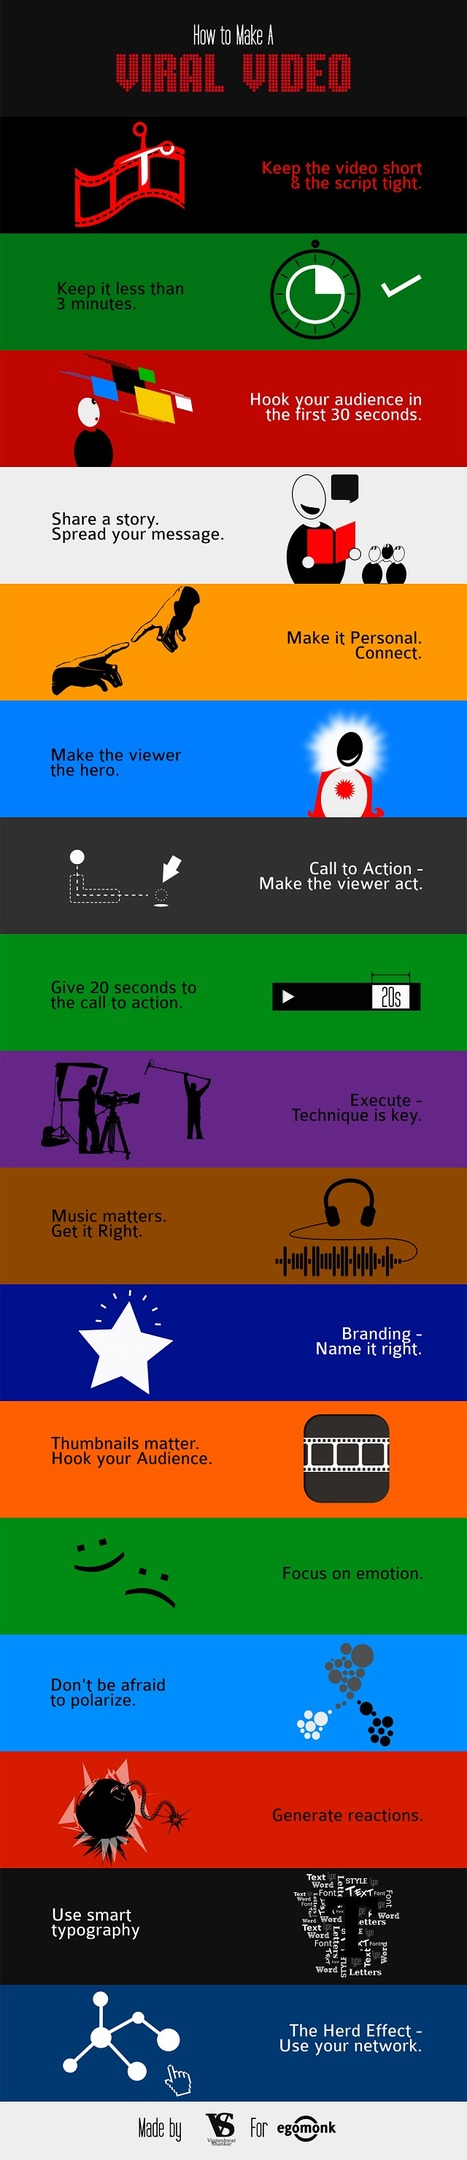 How to Make a Viral Video {Infographic} - Best Infographics | Digital-News on Scoop.it today | Scoop.it